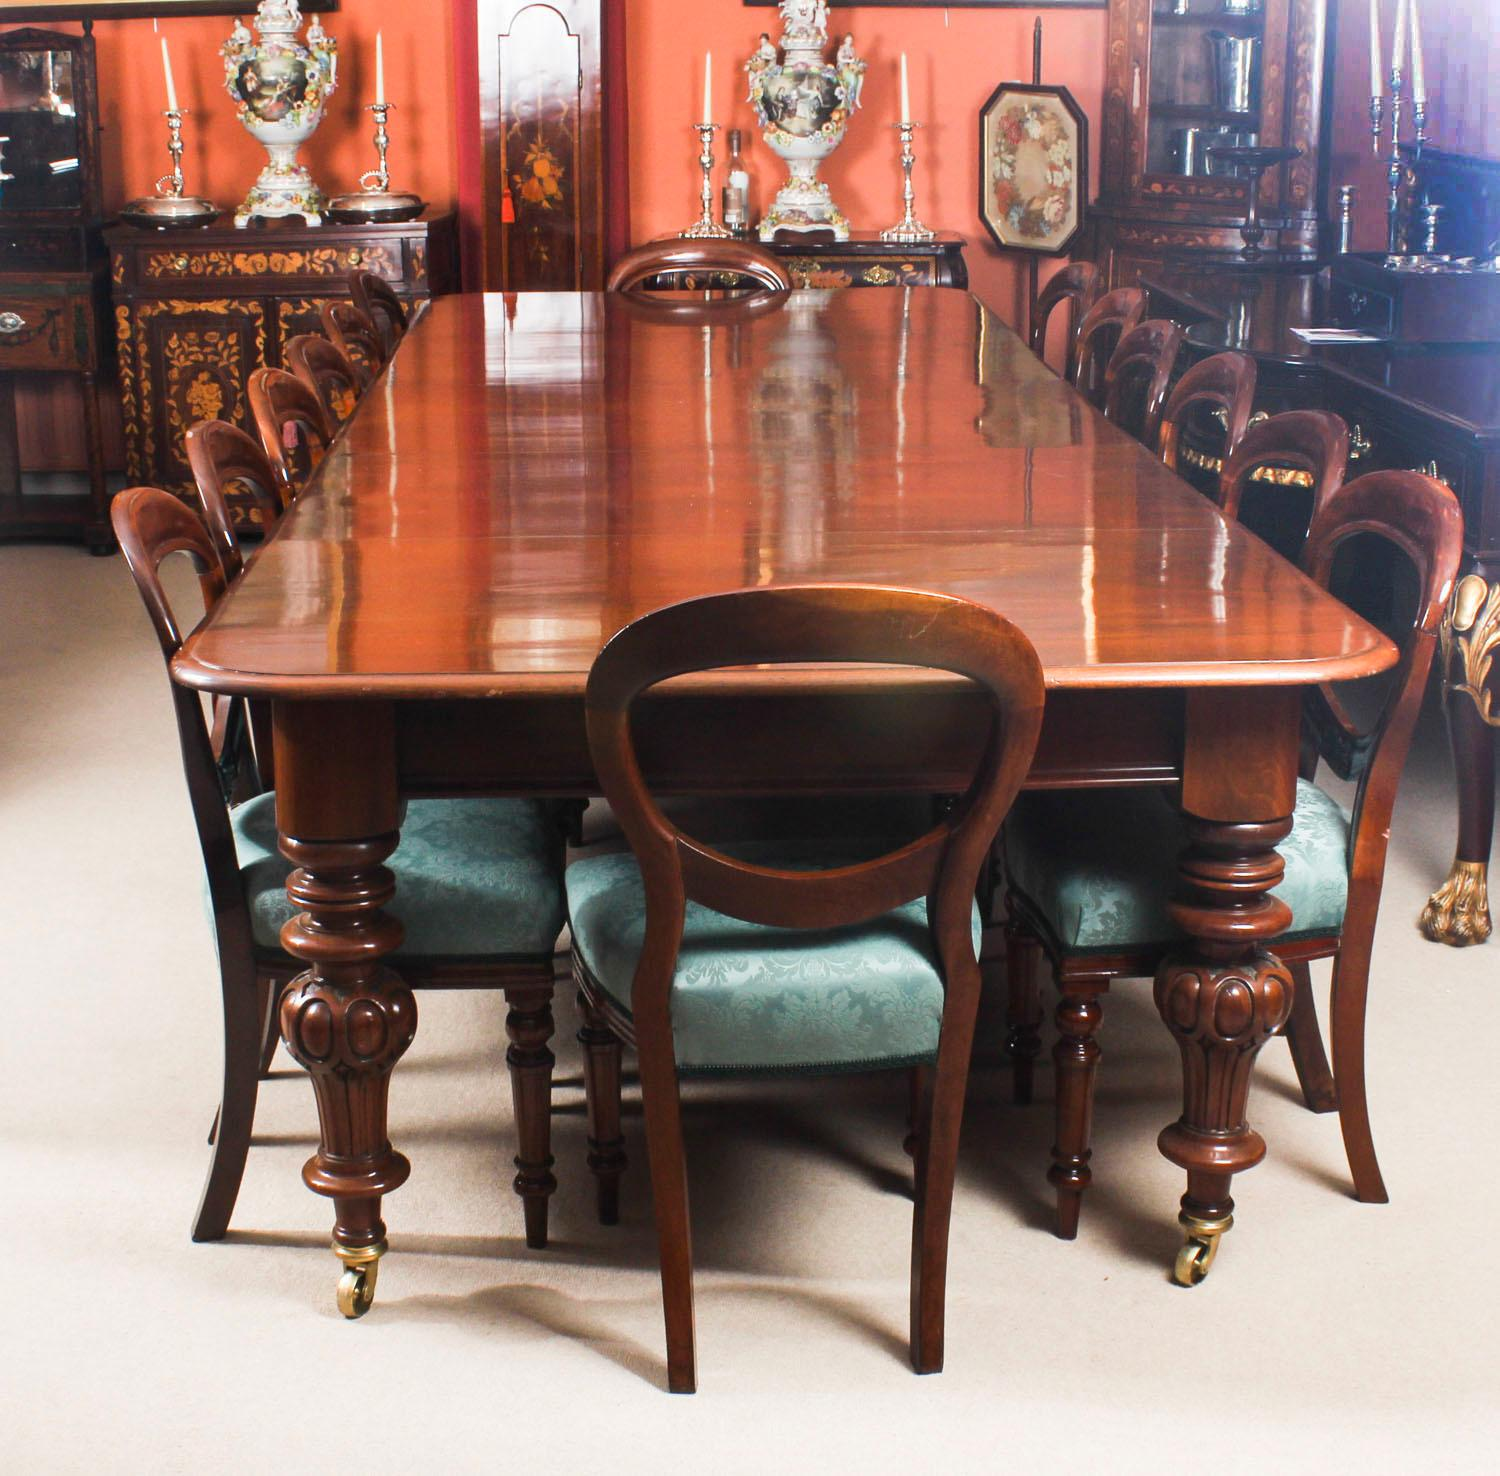 Attirant 19th Century Victorian Flame Mahogany Dining Table U0026 14 Antique Chairs